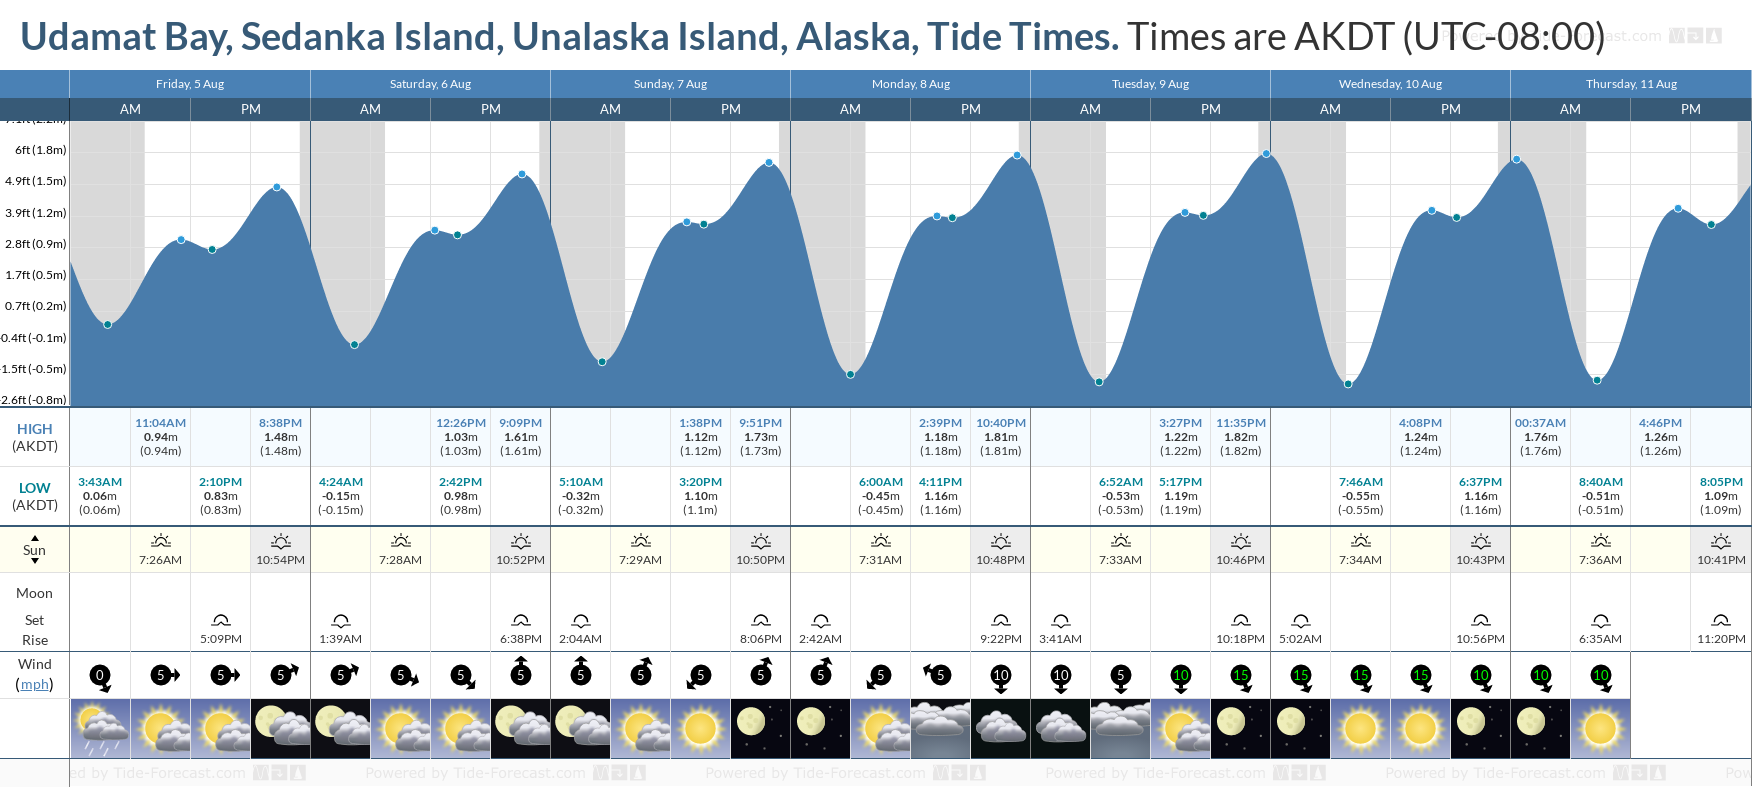 Udamat Bay, Sedanka Island, Unalaska Island, Alaska Tide Chart including high and low tide tide times for the next 7 days